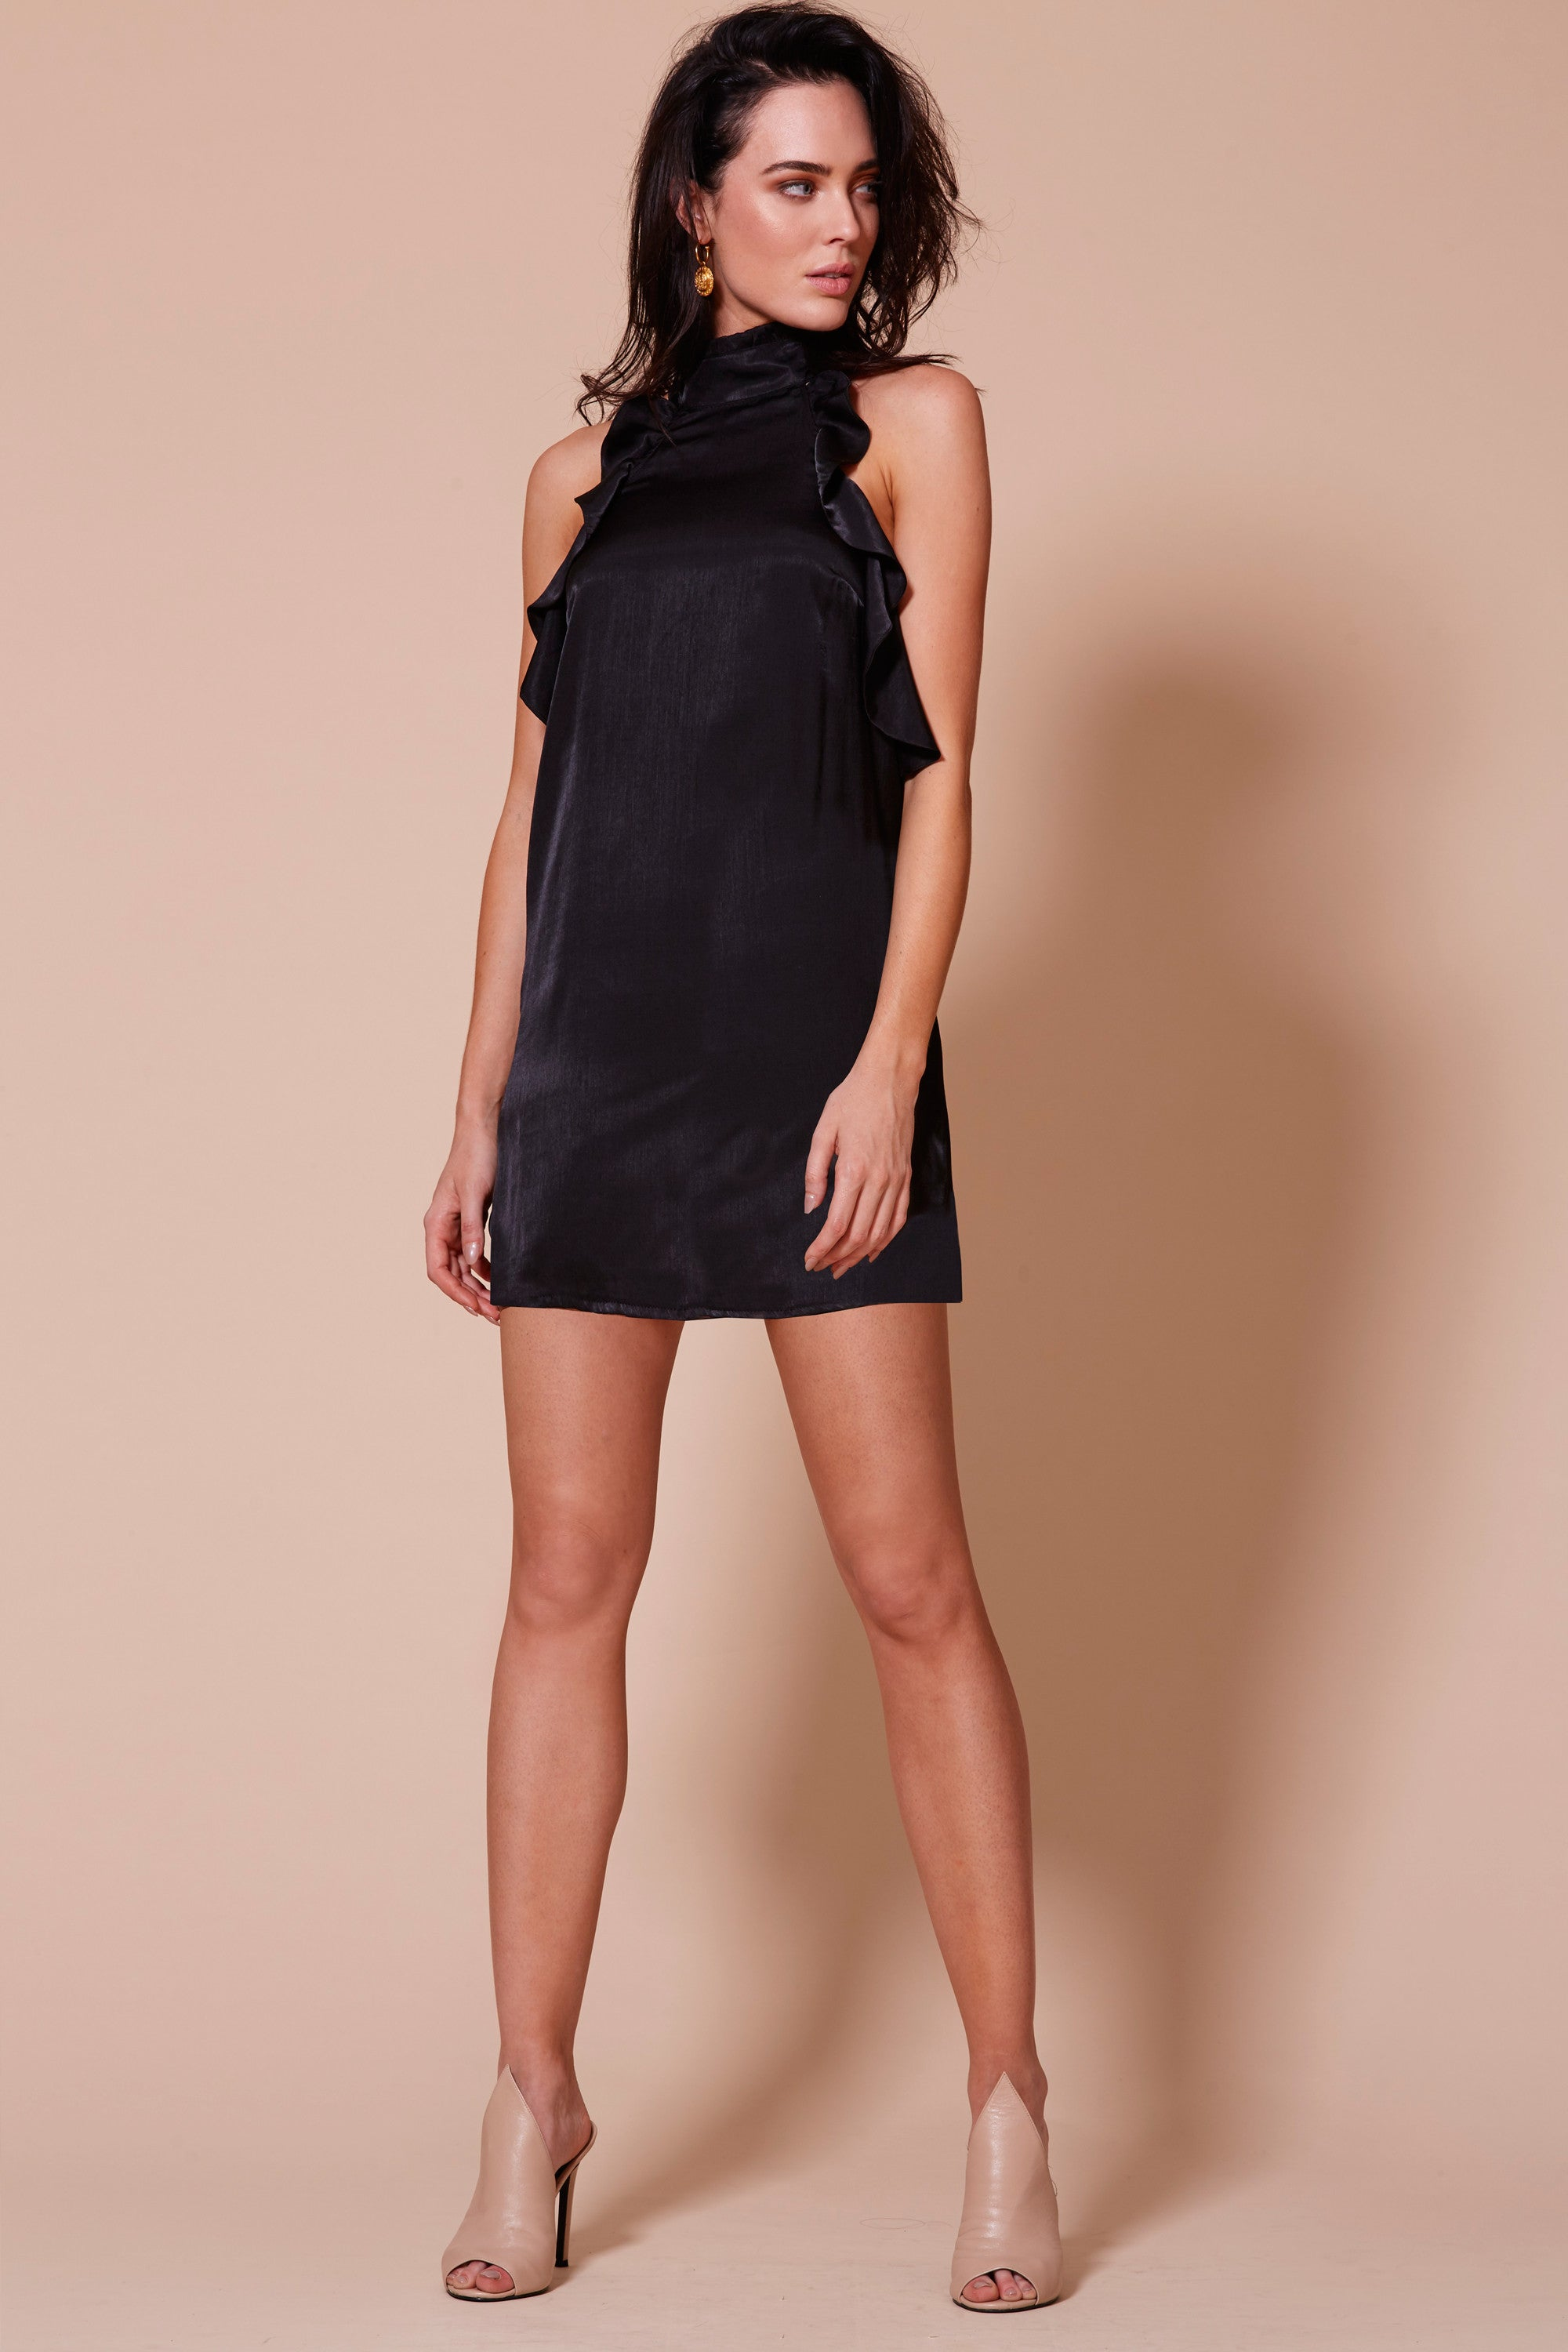 NEGRONI DRESS BLACK